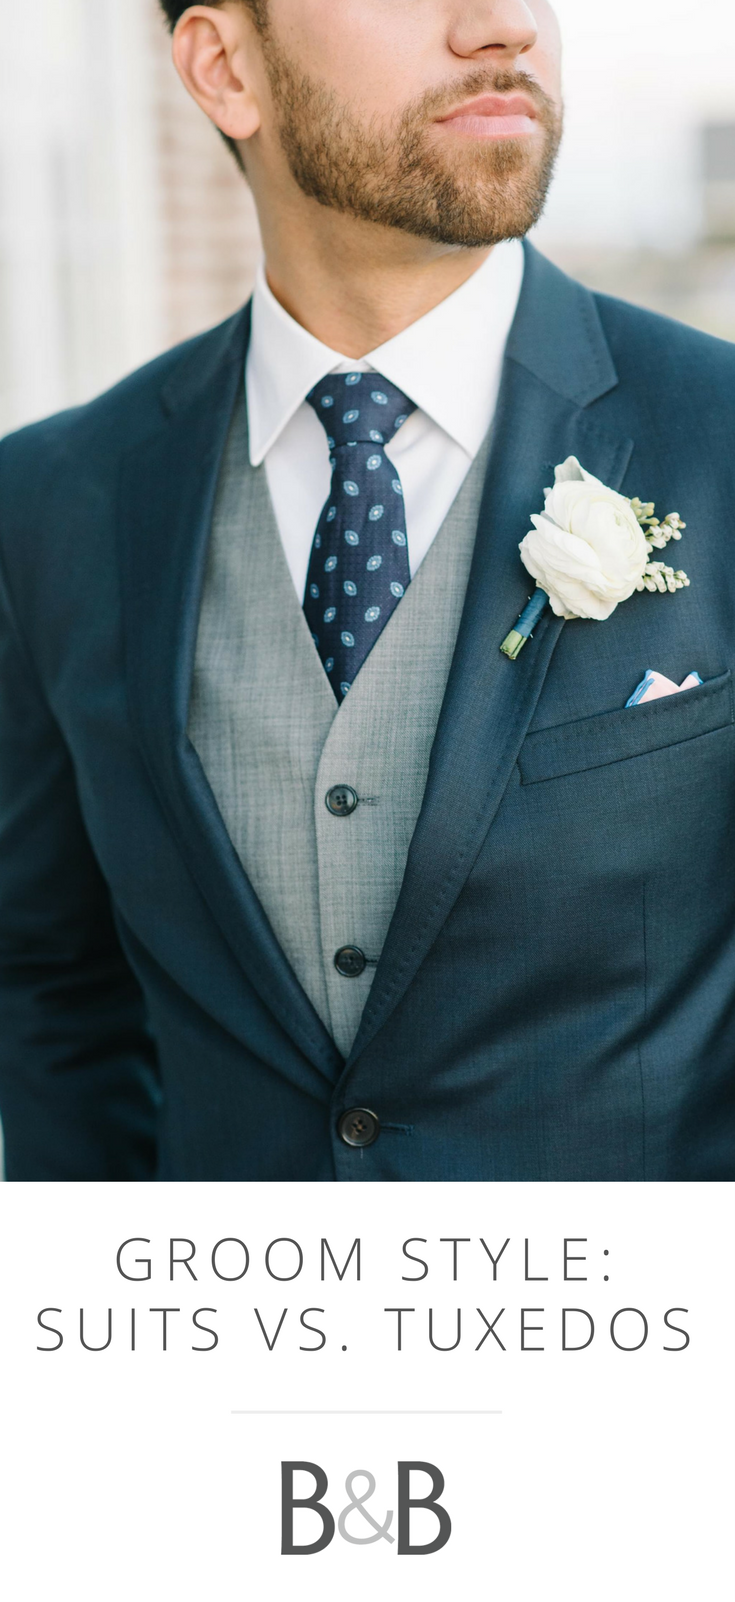 Groom fashion, tuxedo vs suit, tux, groomsmen style, wedding outfits ...